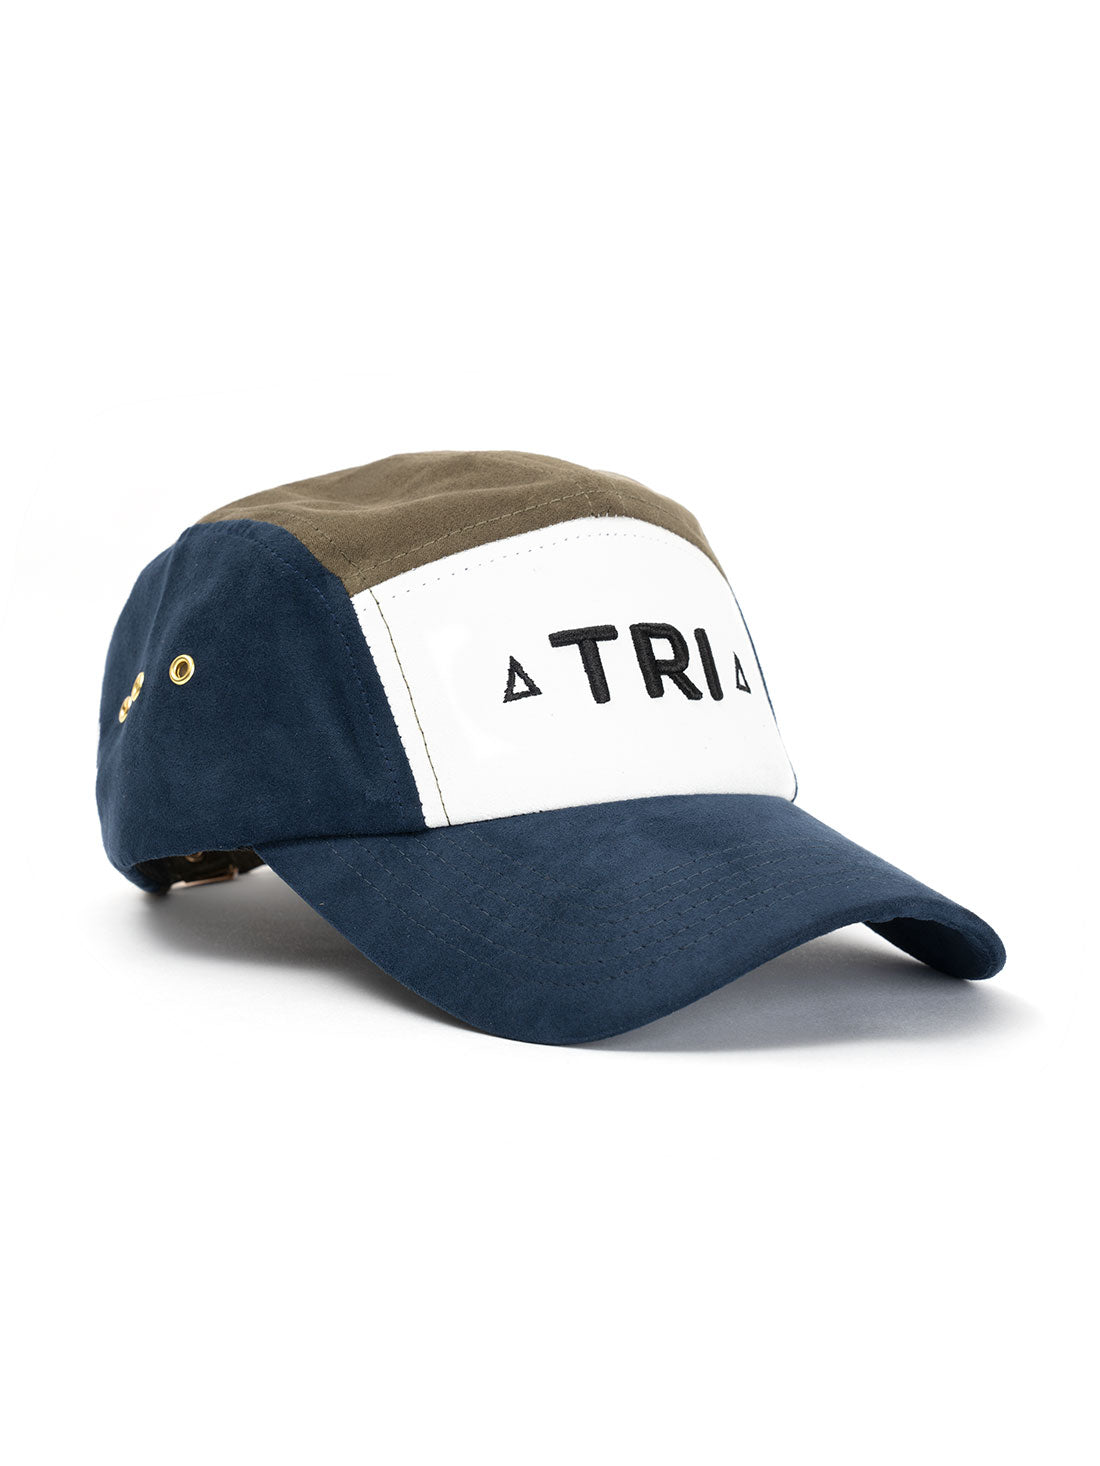 TRI 5 Panel NAVY/OLIVE SUEDE